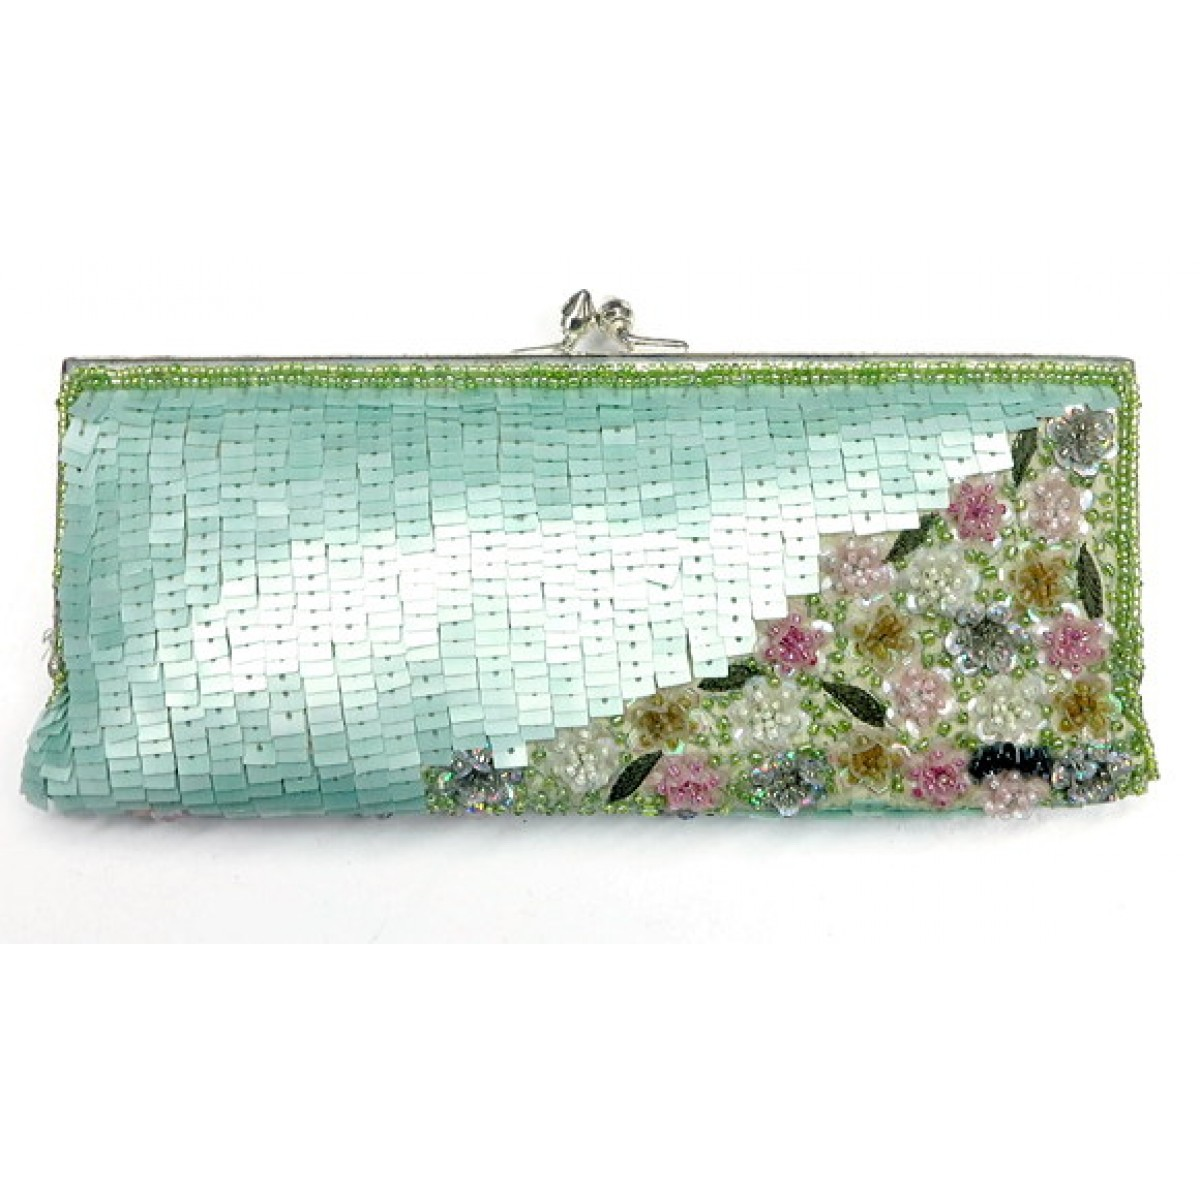 Clutch With Sequin, Beads and Embroidery